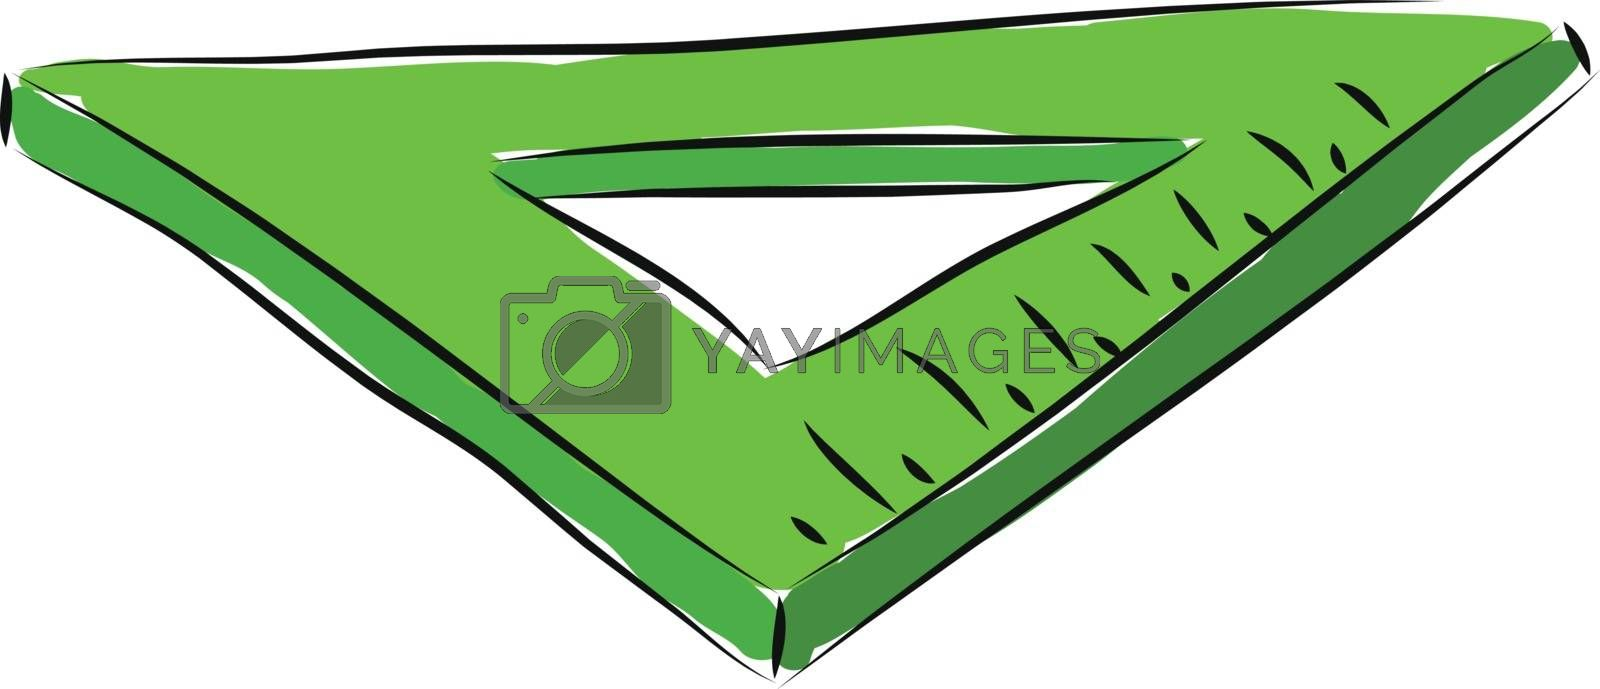 Royalty free image of Green triangle ruler illustration vector on white background by Morphart